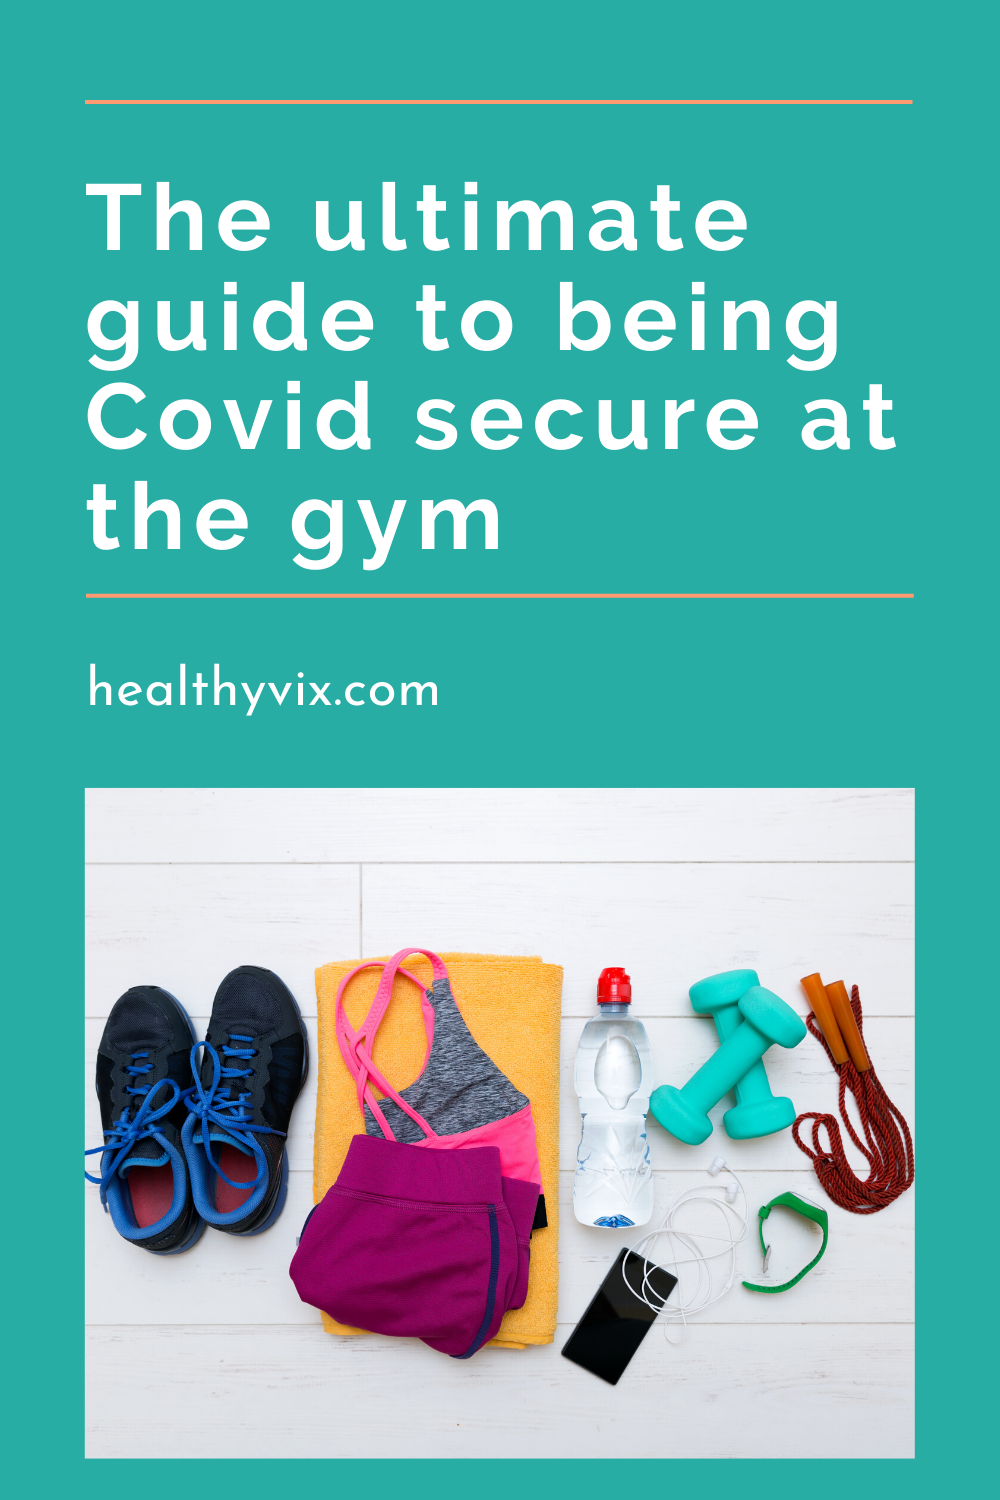 The ultimate guide to being Covid secure at the gym